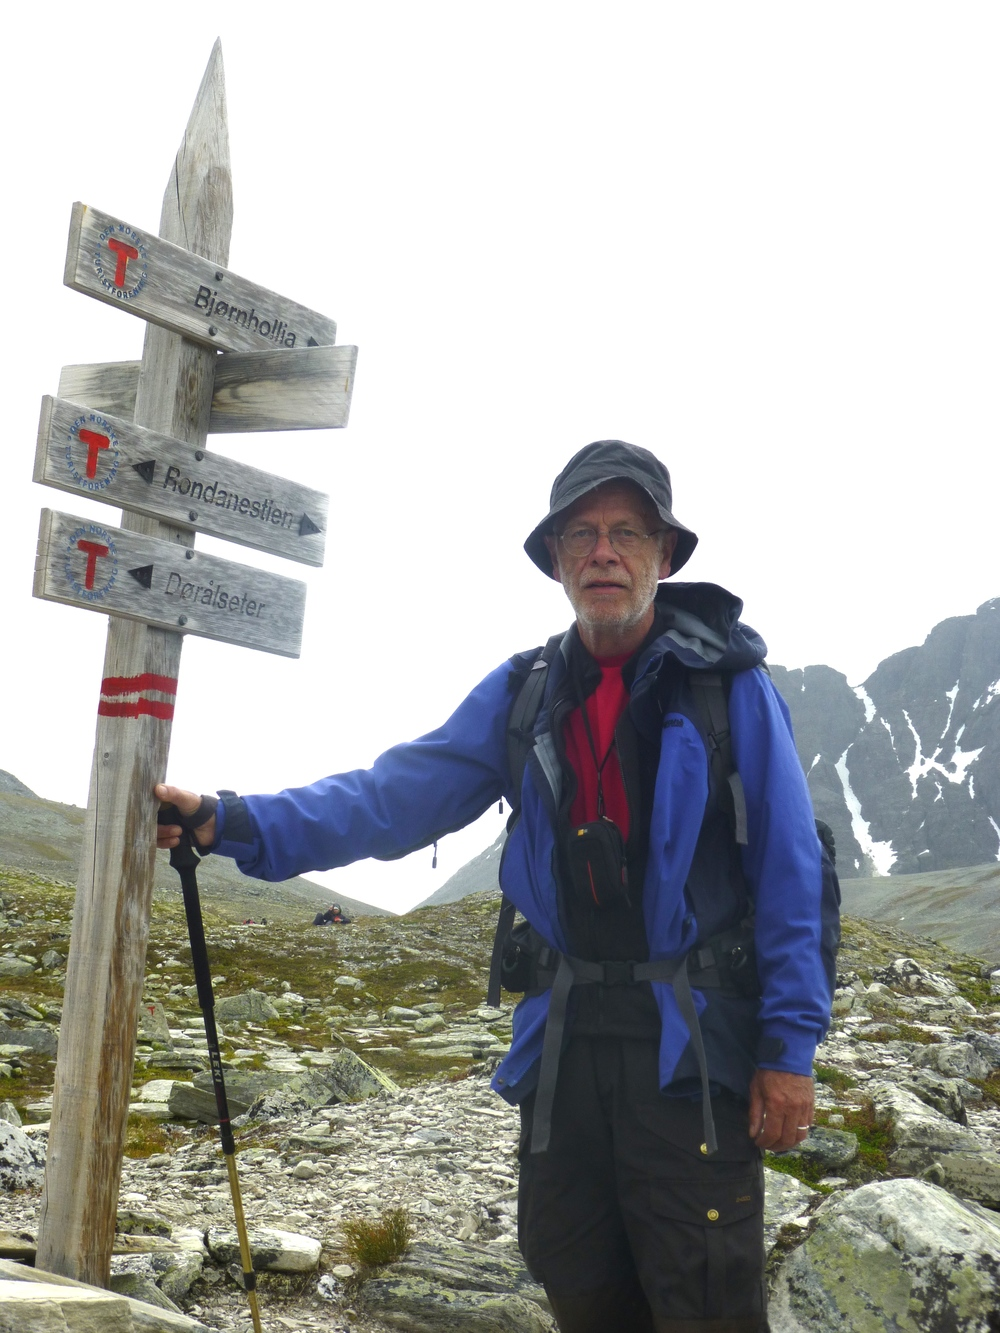 Trekking in the Norwegian mountains, July 2013